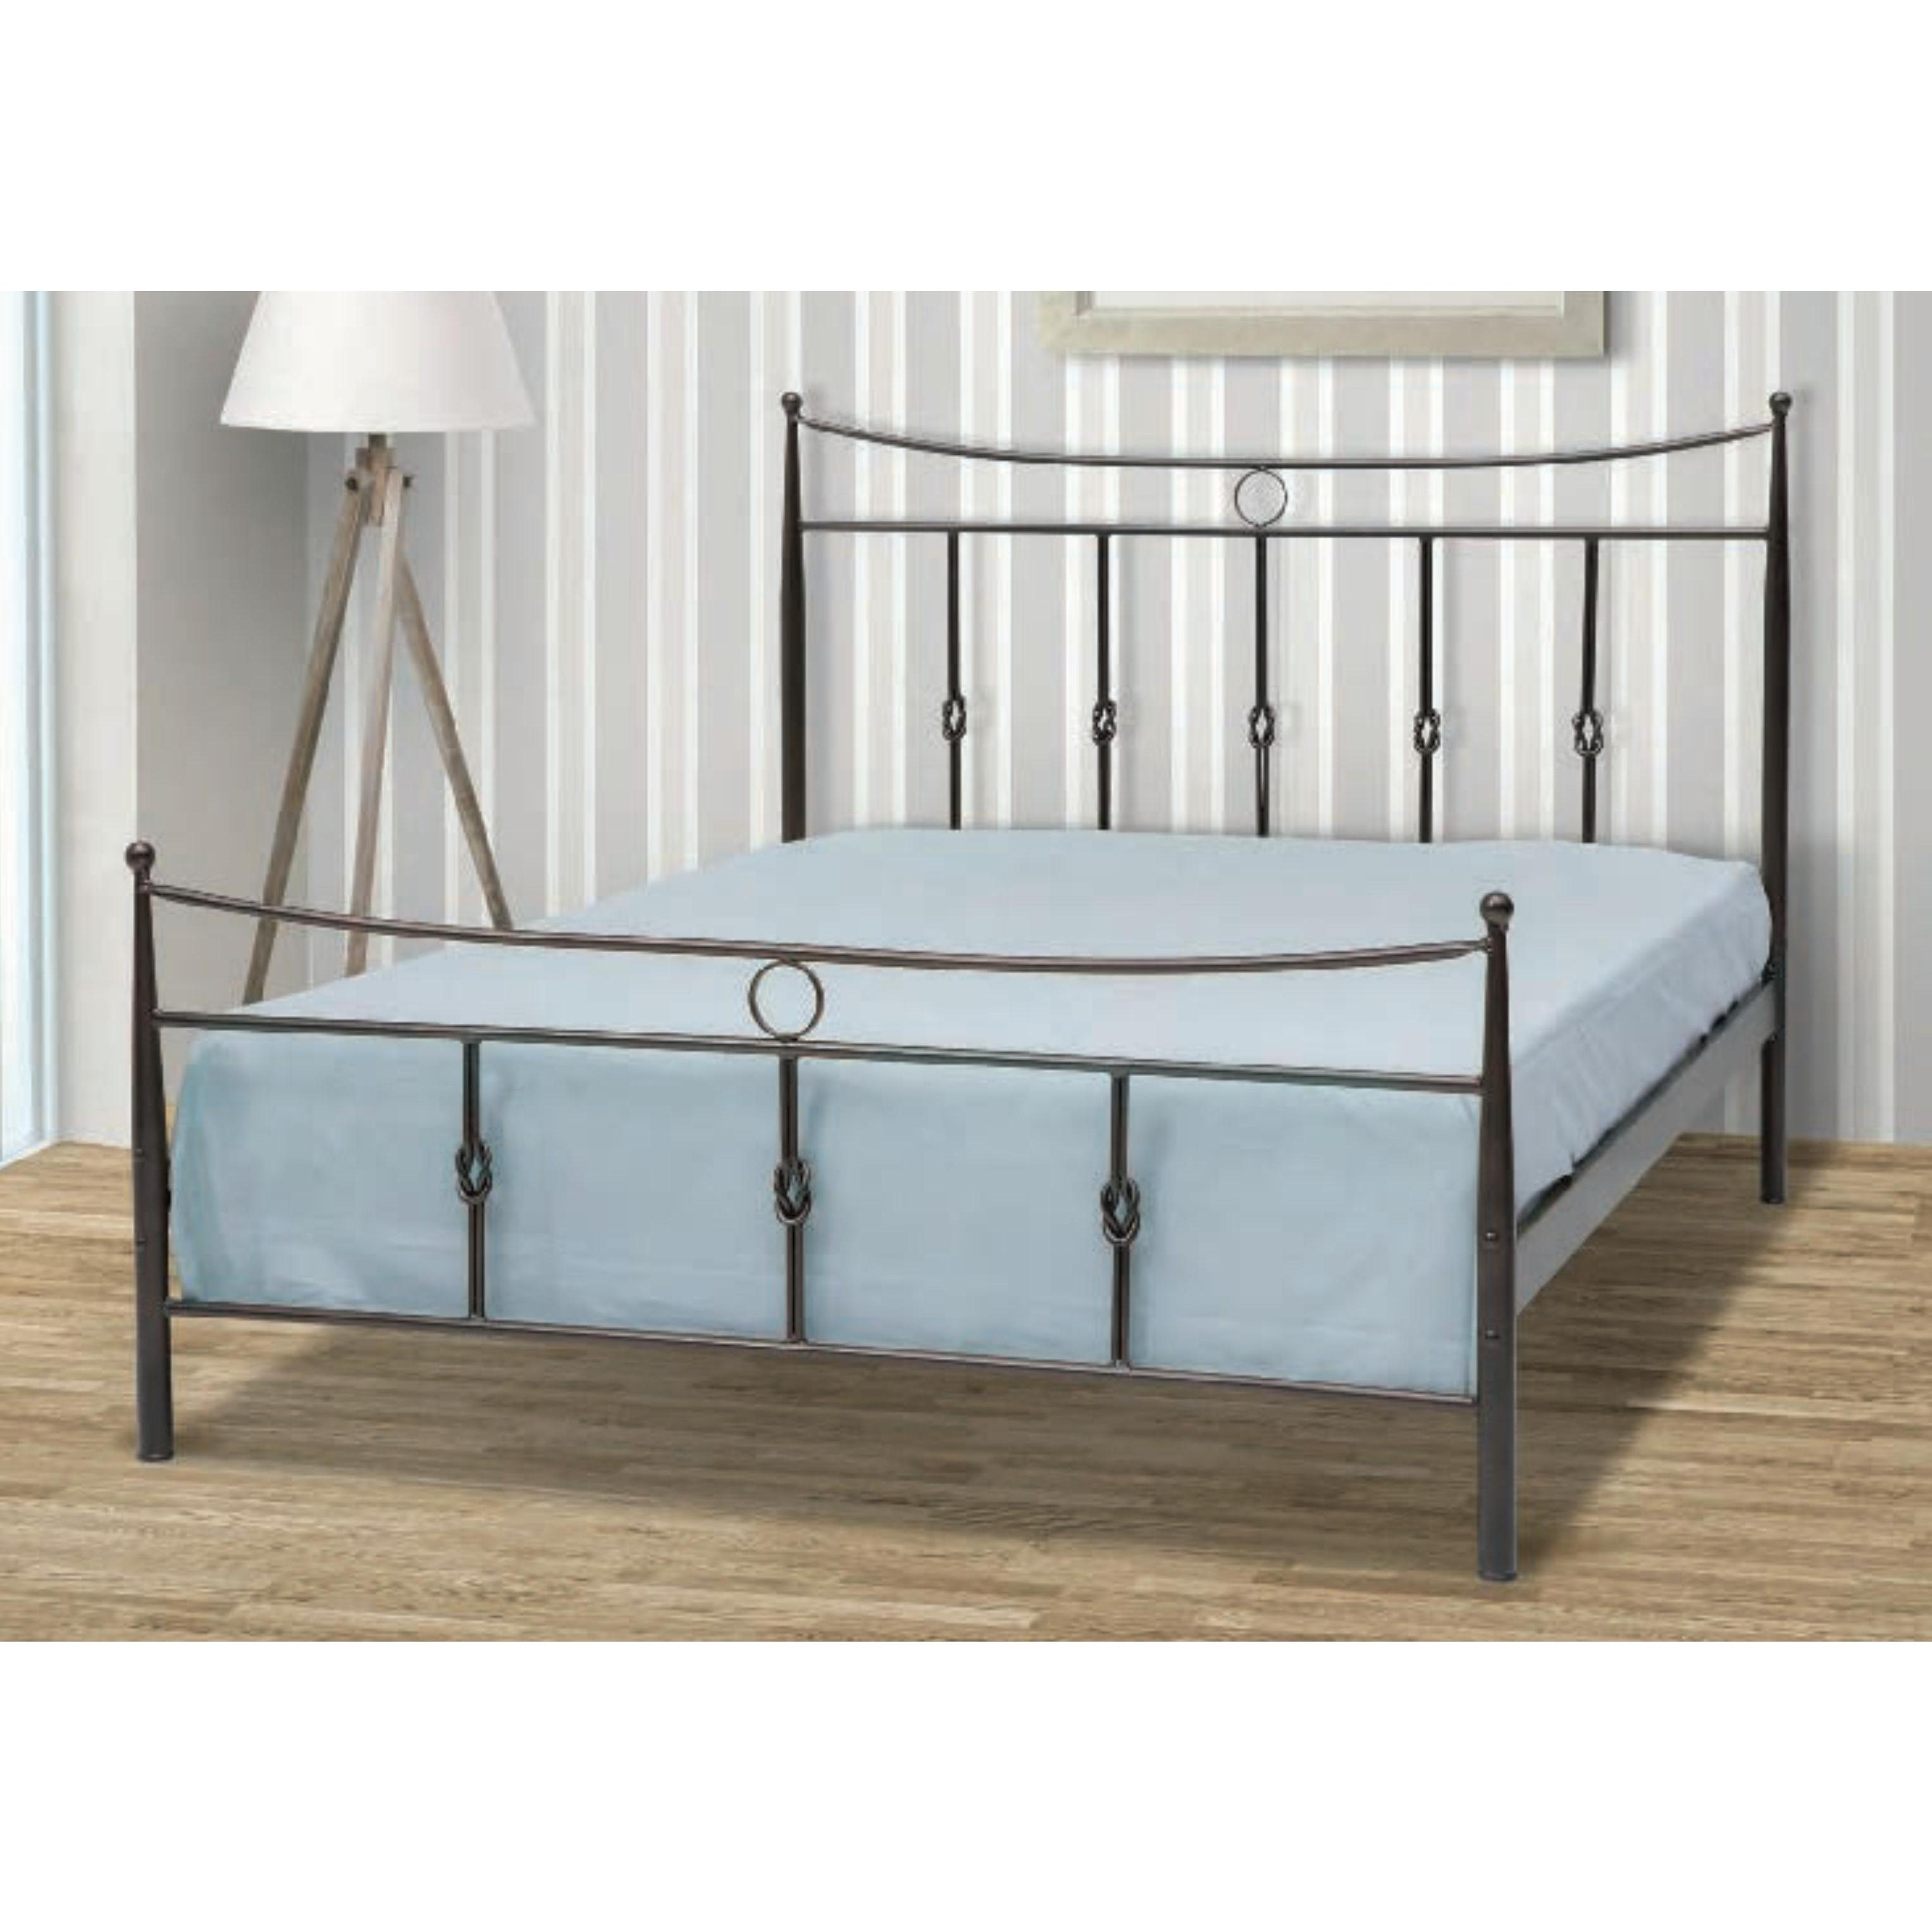 Iron single bed kithira 90x200 cm for Couch 90x200